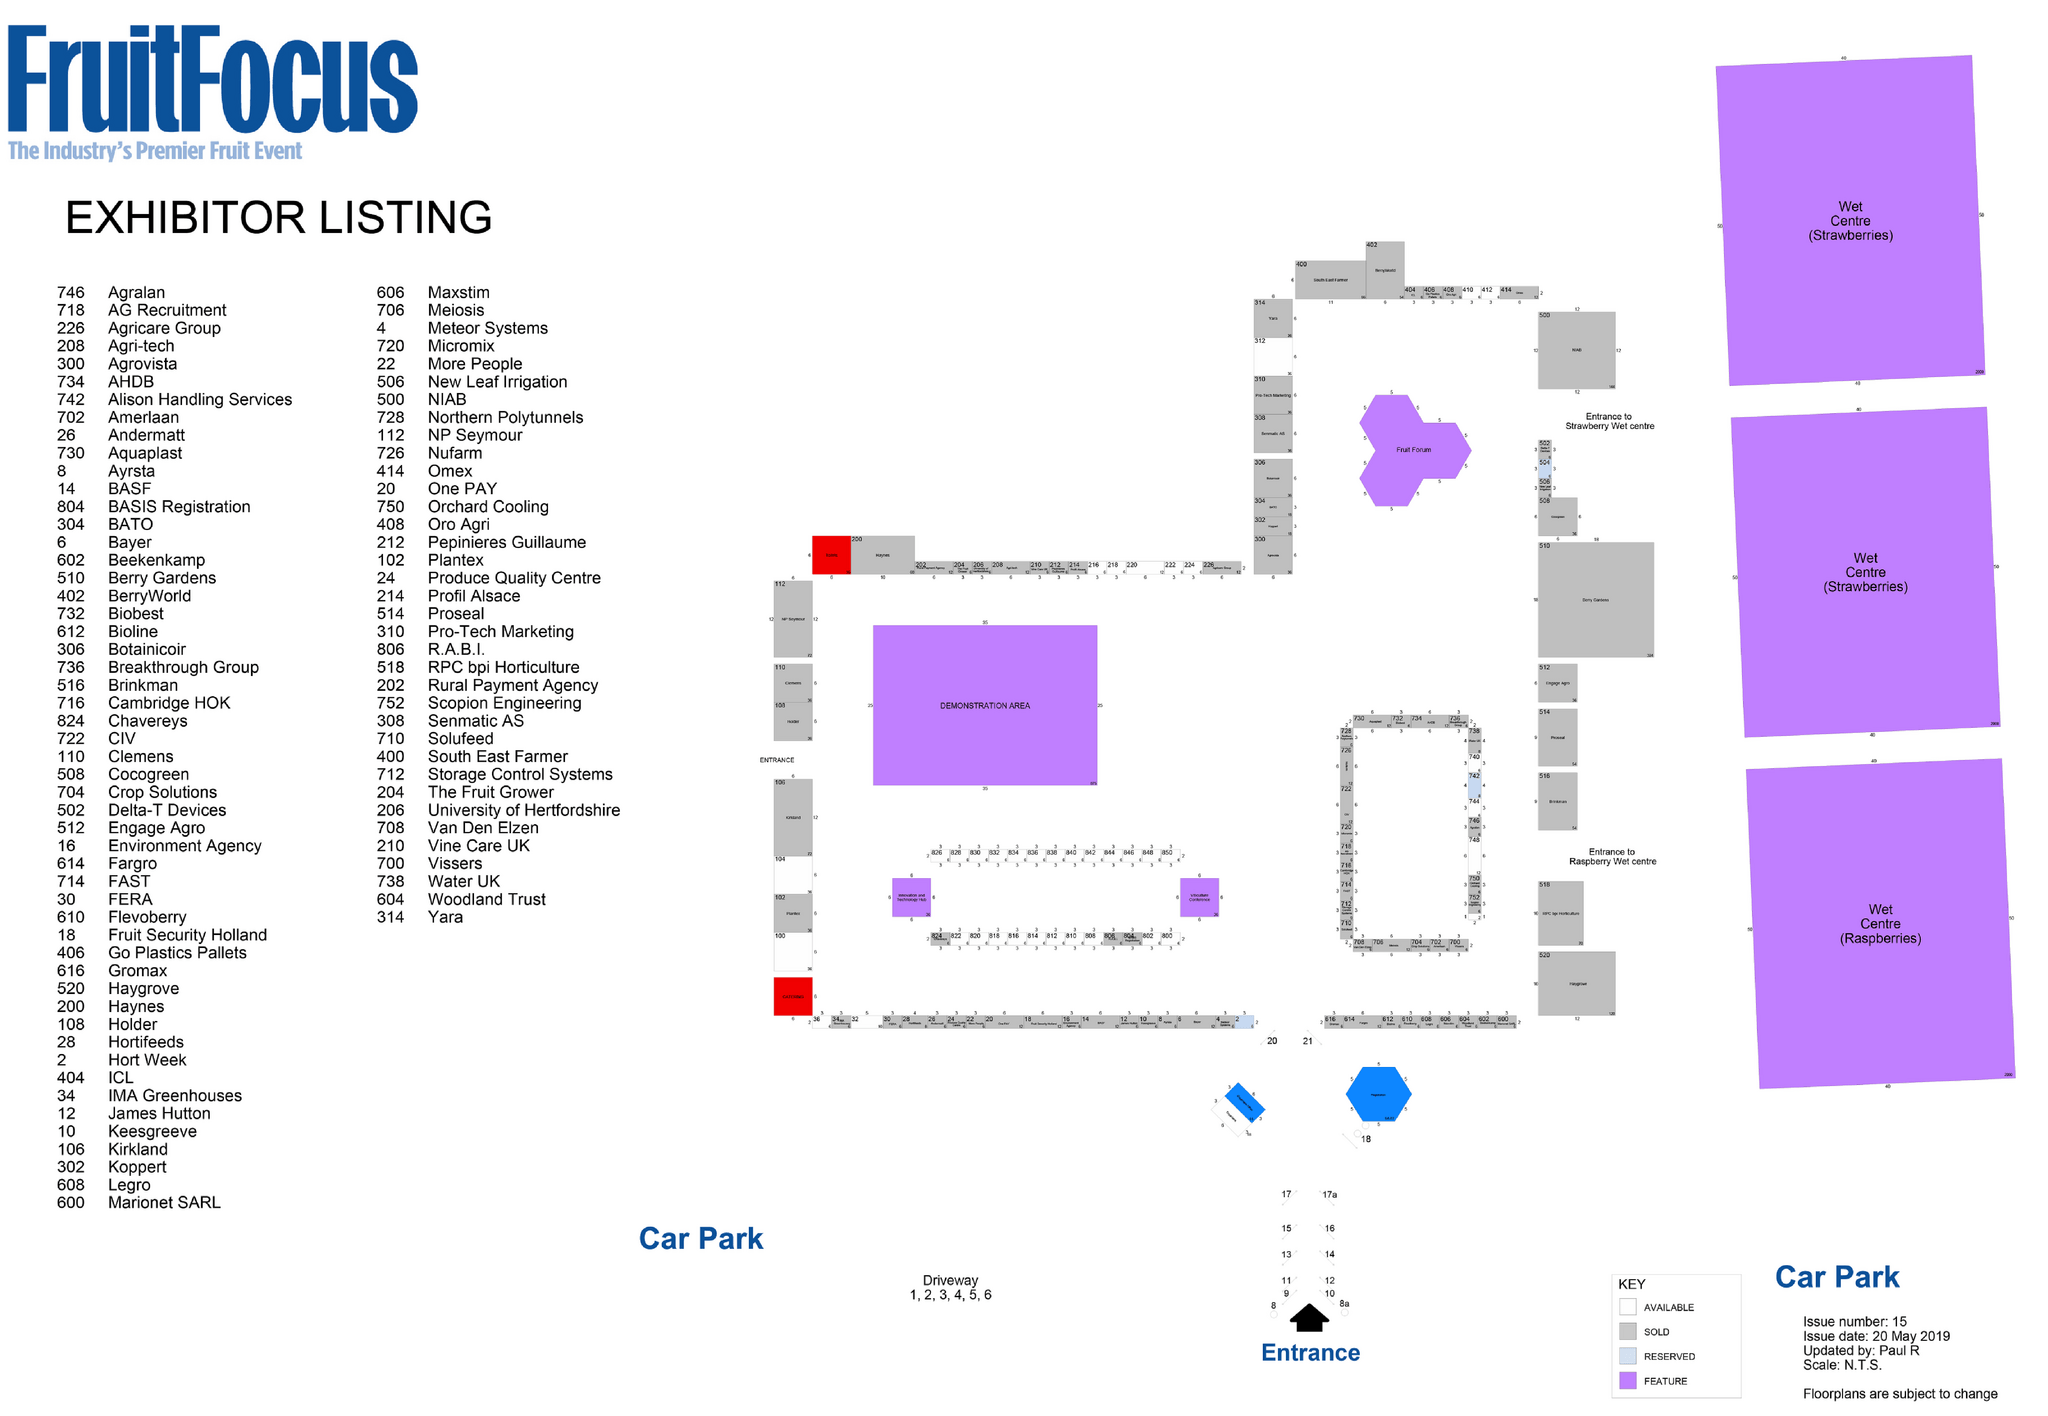 Fruit Focus 2019 Event Map